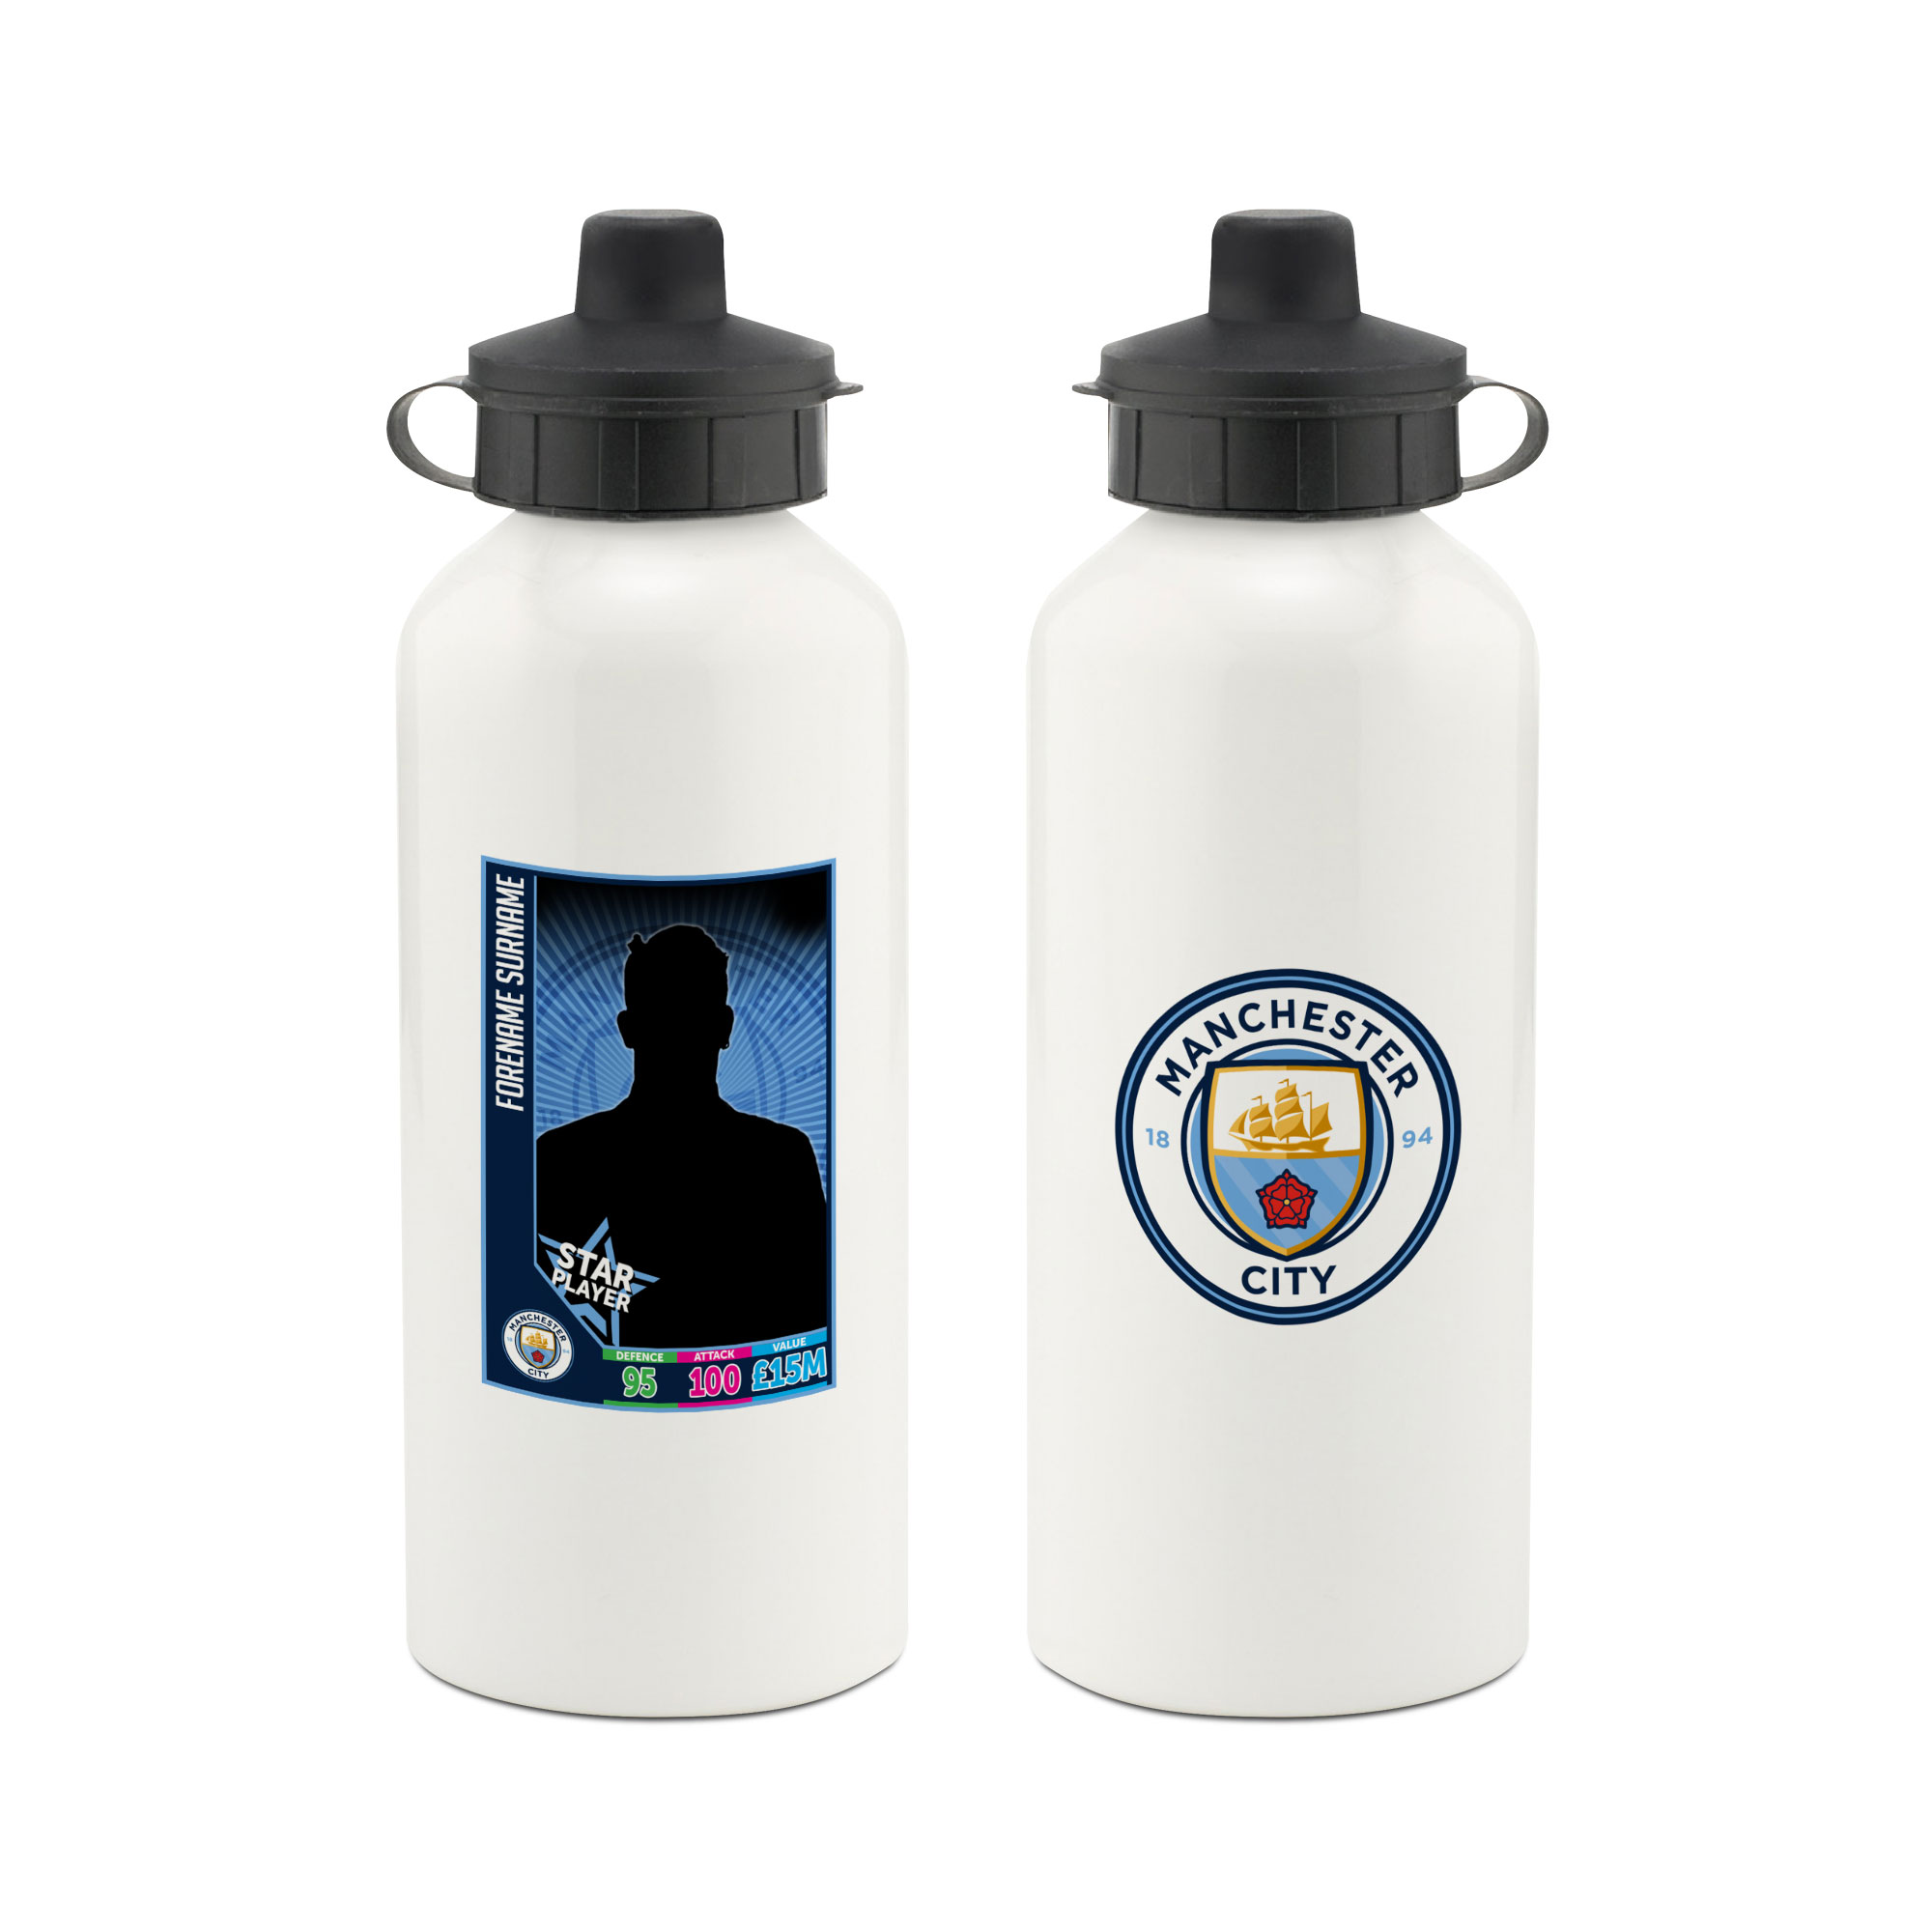 Manchester City FC Trading Card Aluminium Water Bottle